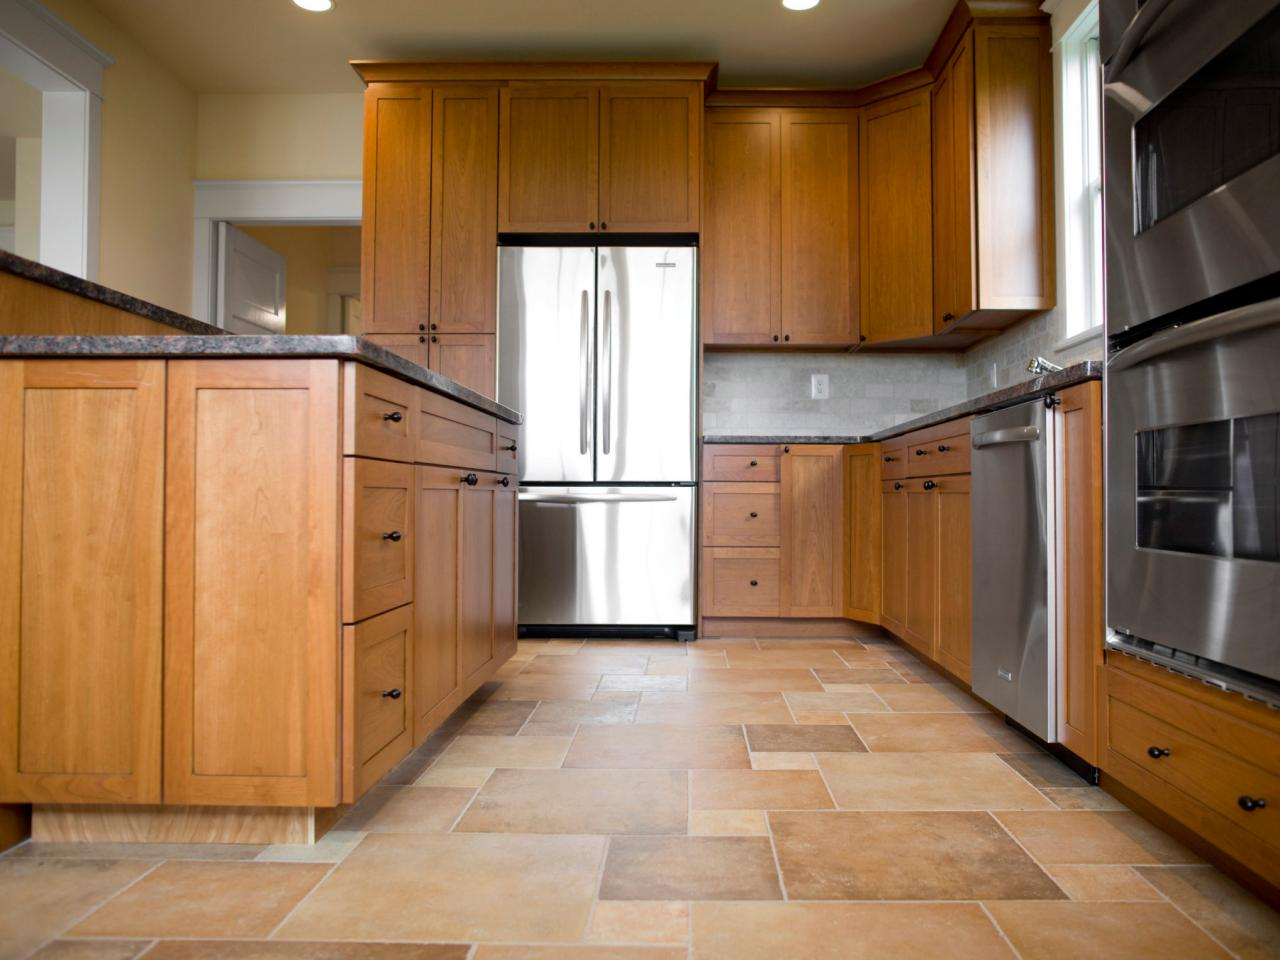 Whats the best kitchen floor tile diy related to kitchen floors floor tile dailygadgetfo Gallery